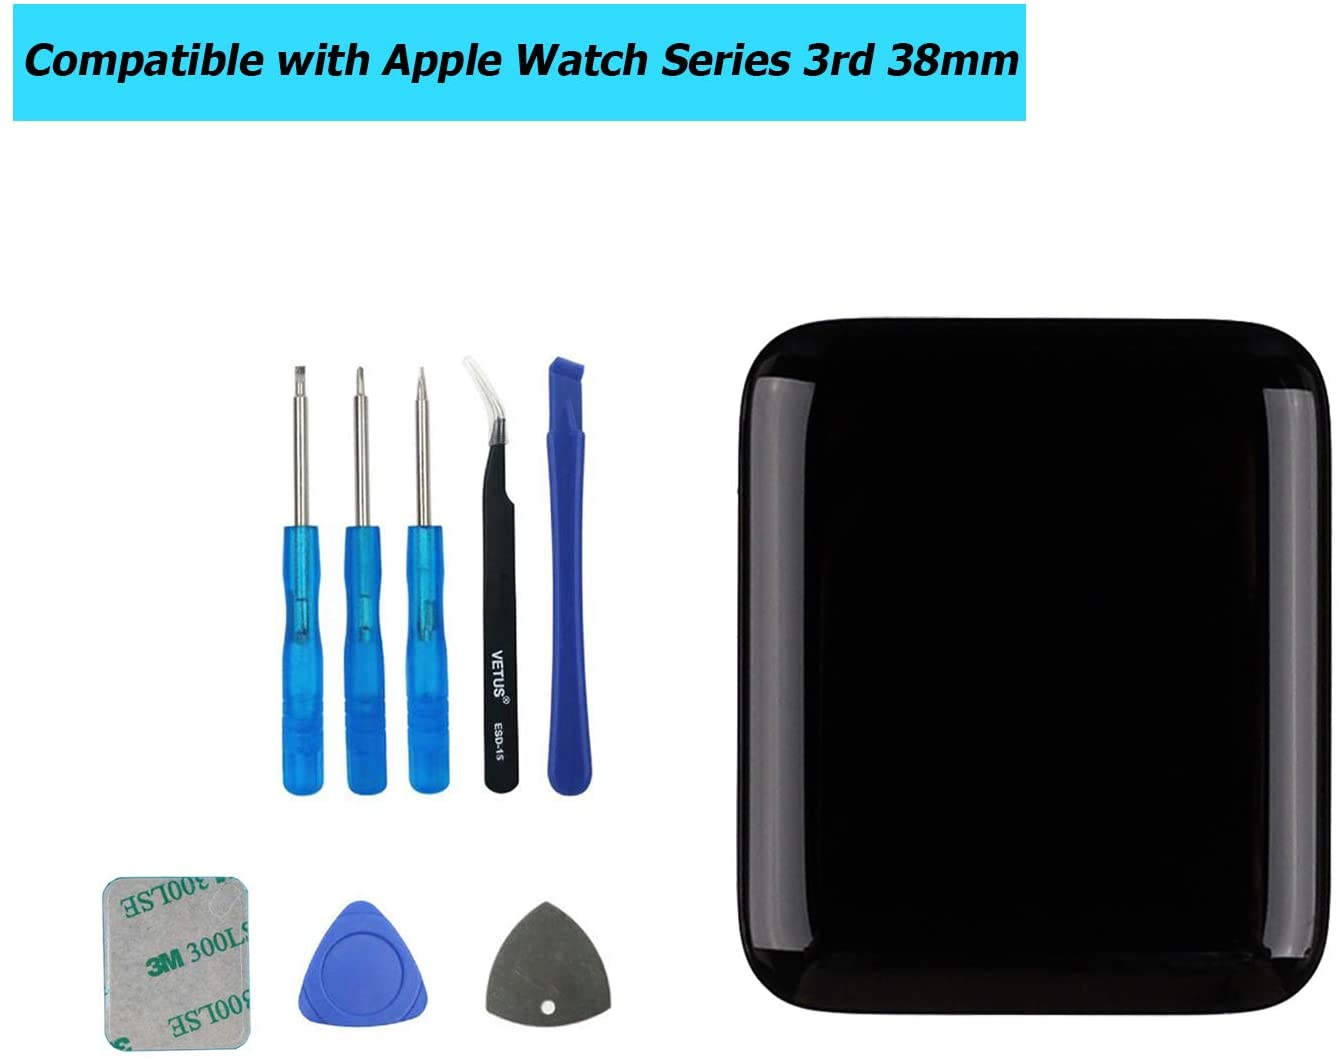 E-YIIVIIL Replacement Screen Compatible with Apple Watch Series 3rd 38mm GPS+Cellular Touch Screen Display LCD with Toolkit (3rd 38mm,S3 38mm)